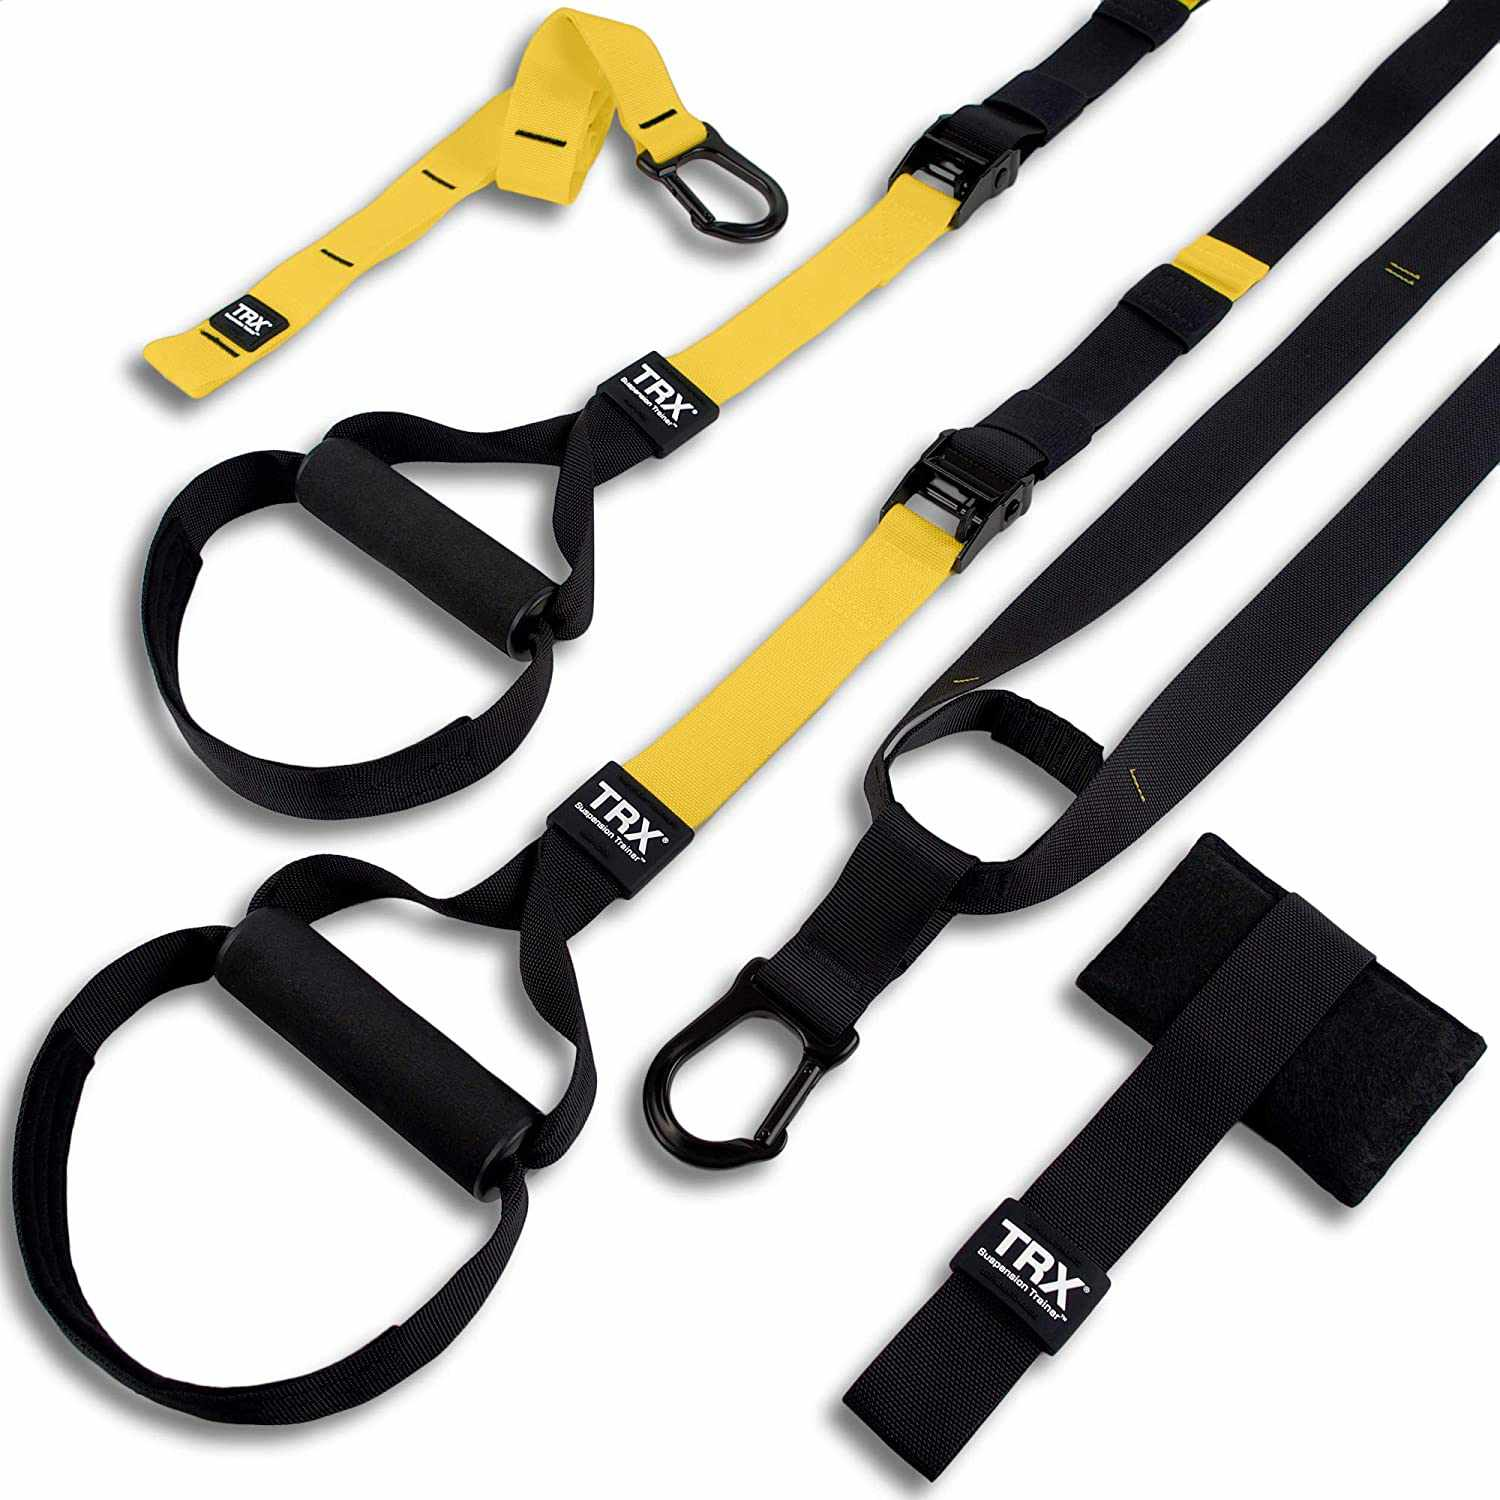 TRX All-in-One Suspension Training Fitness System